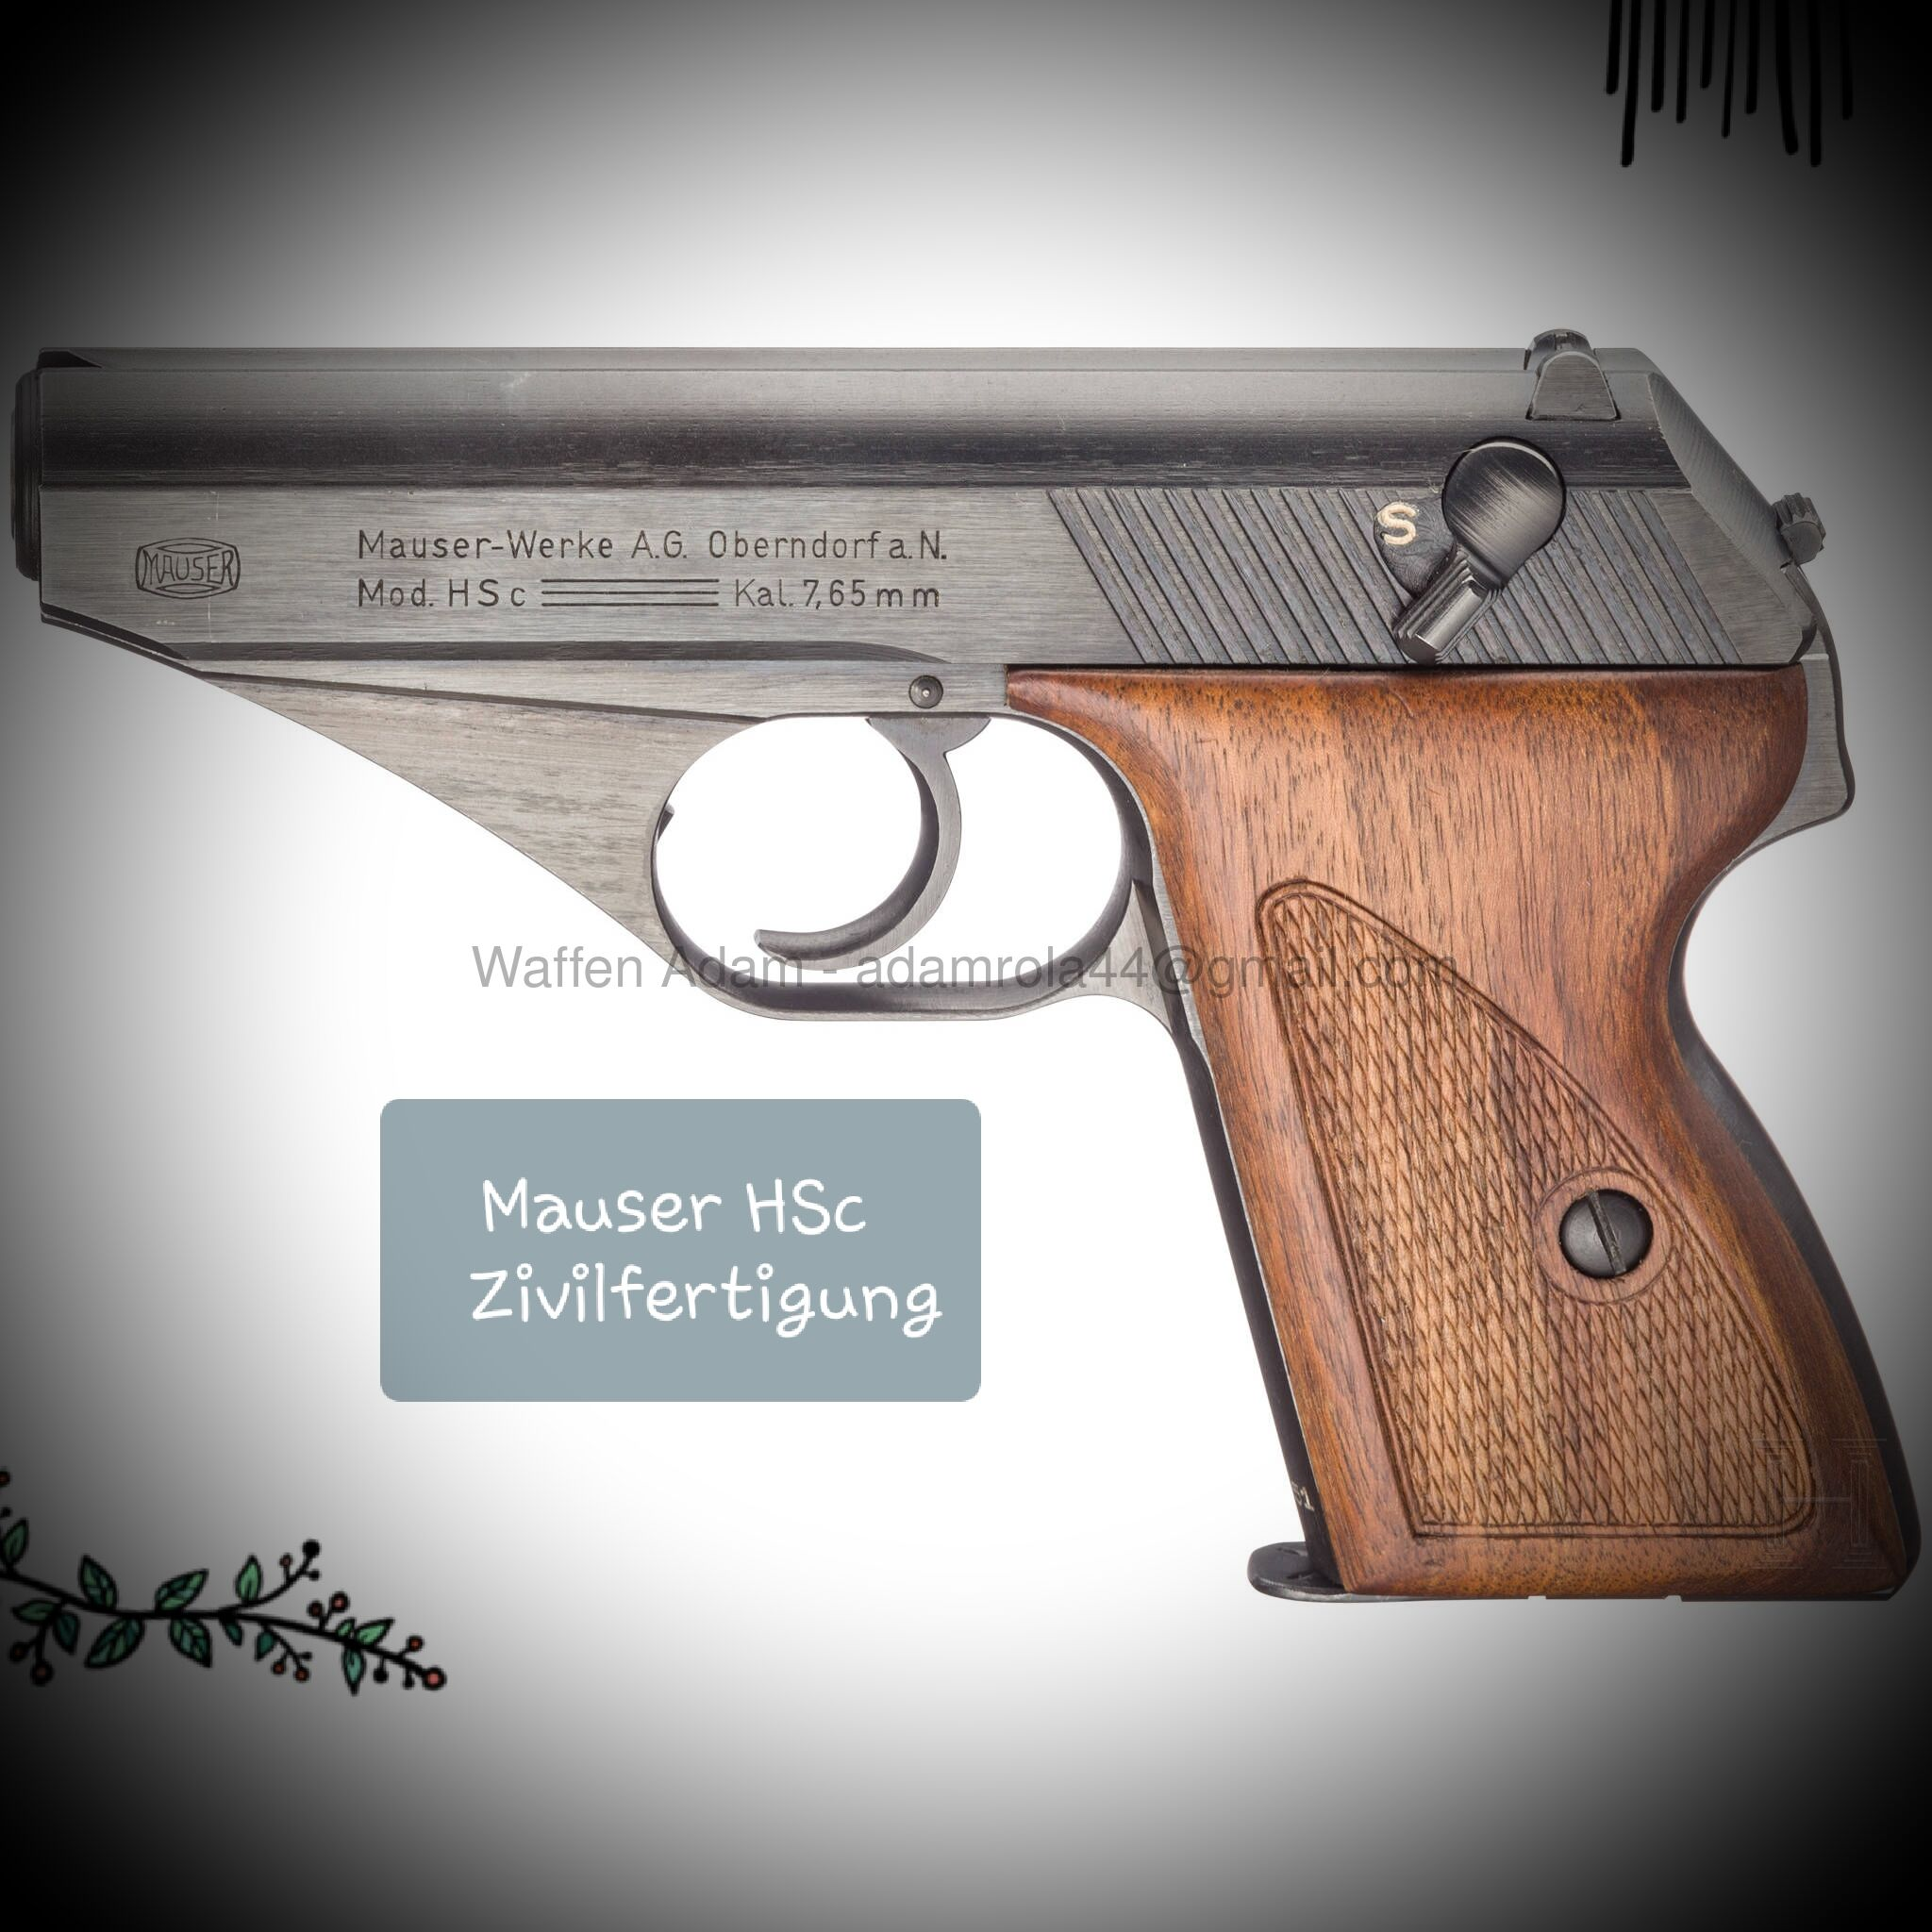 Mauser HSc late war, commercial